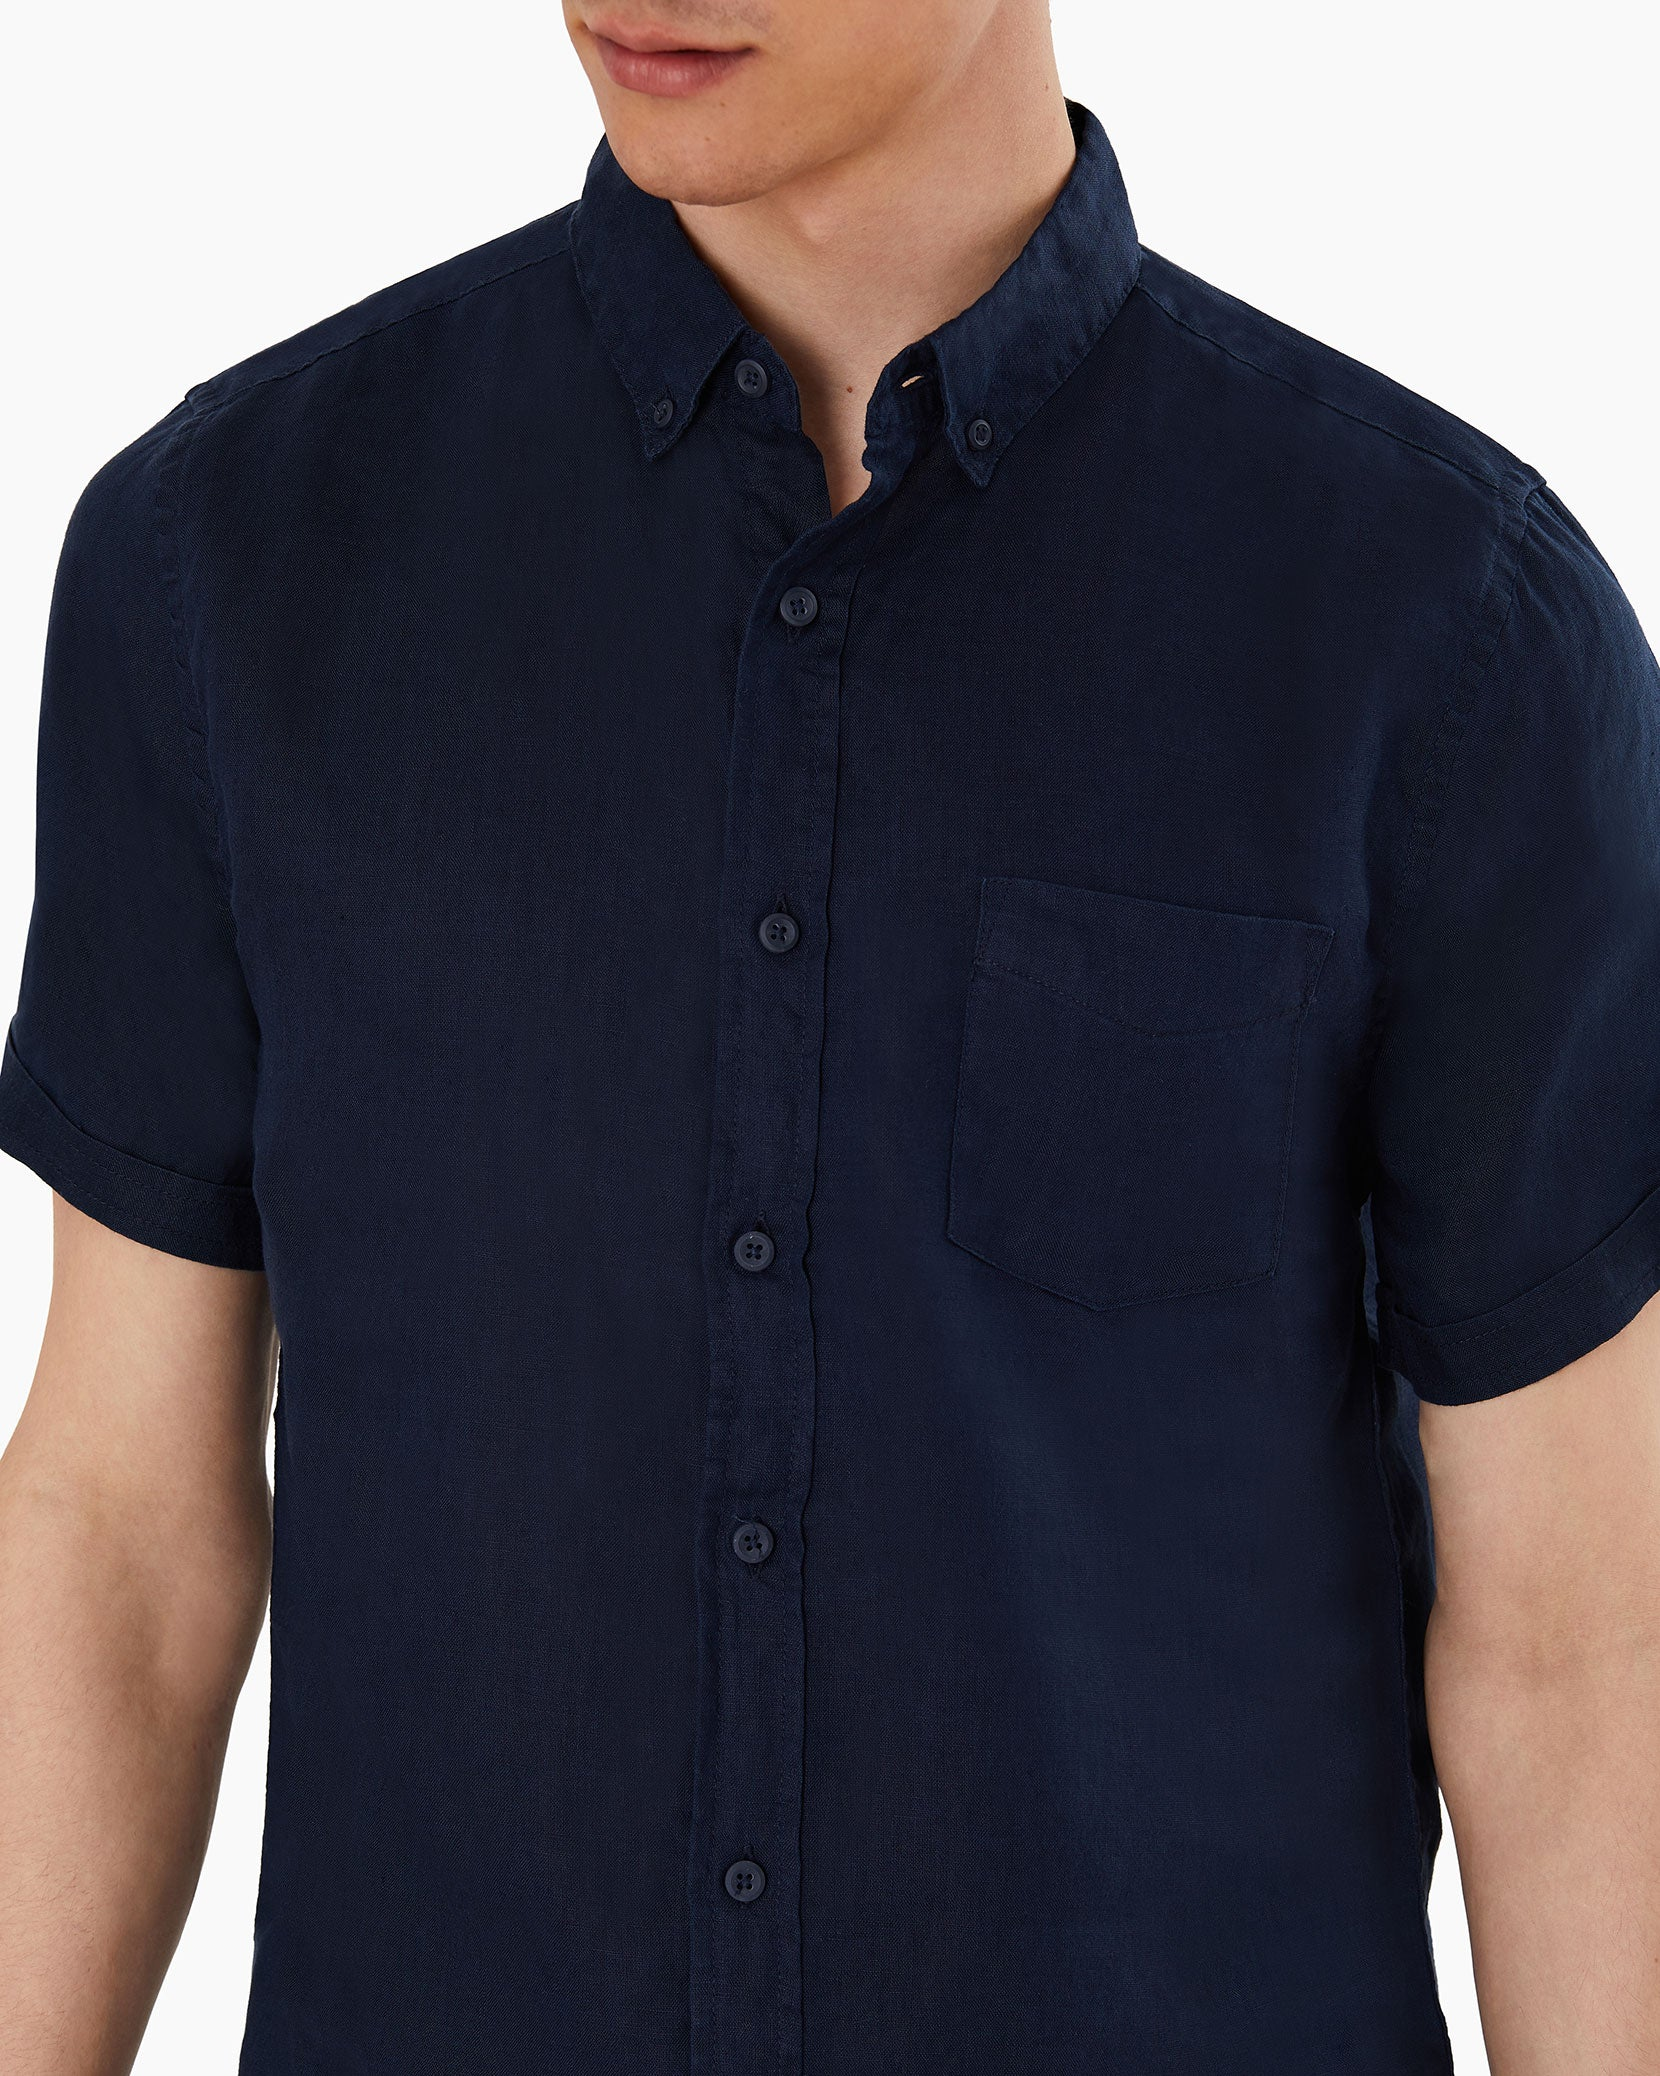 Stretch Linen Short Sleeve Shirt in Deep Navy - 9 - Onia